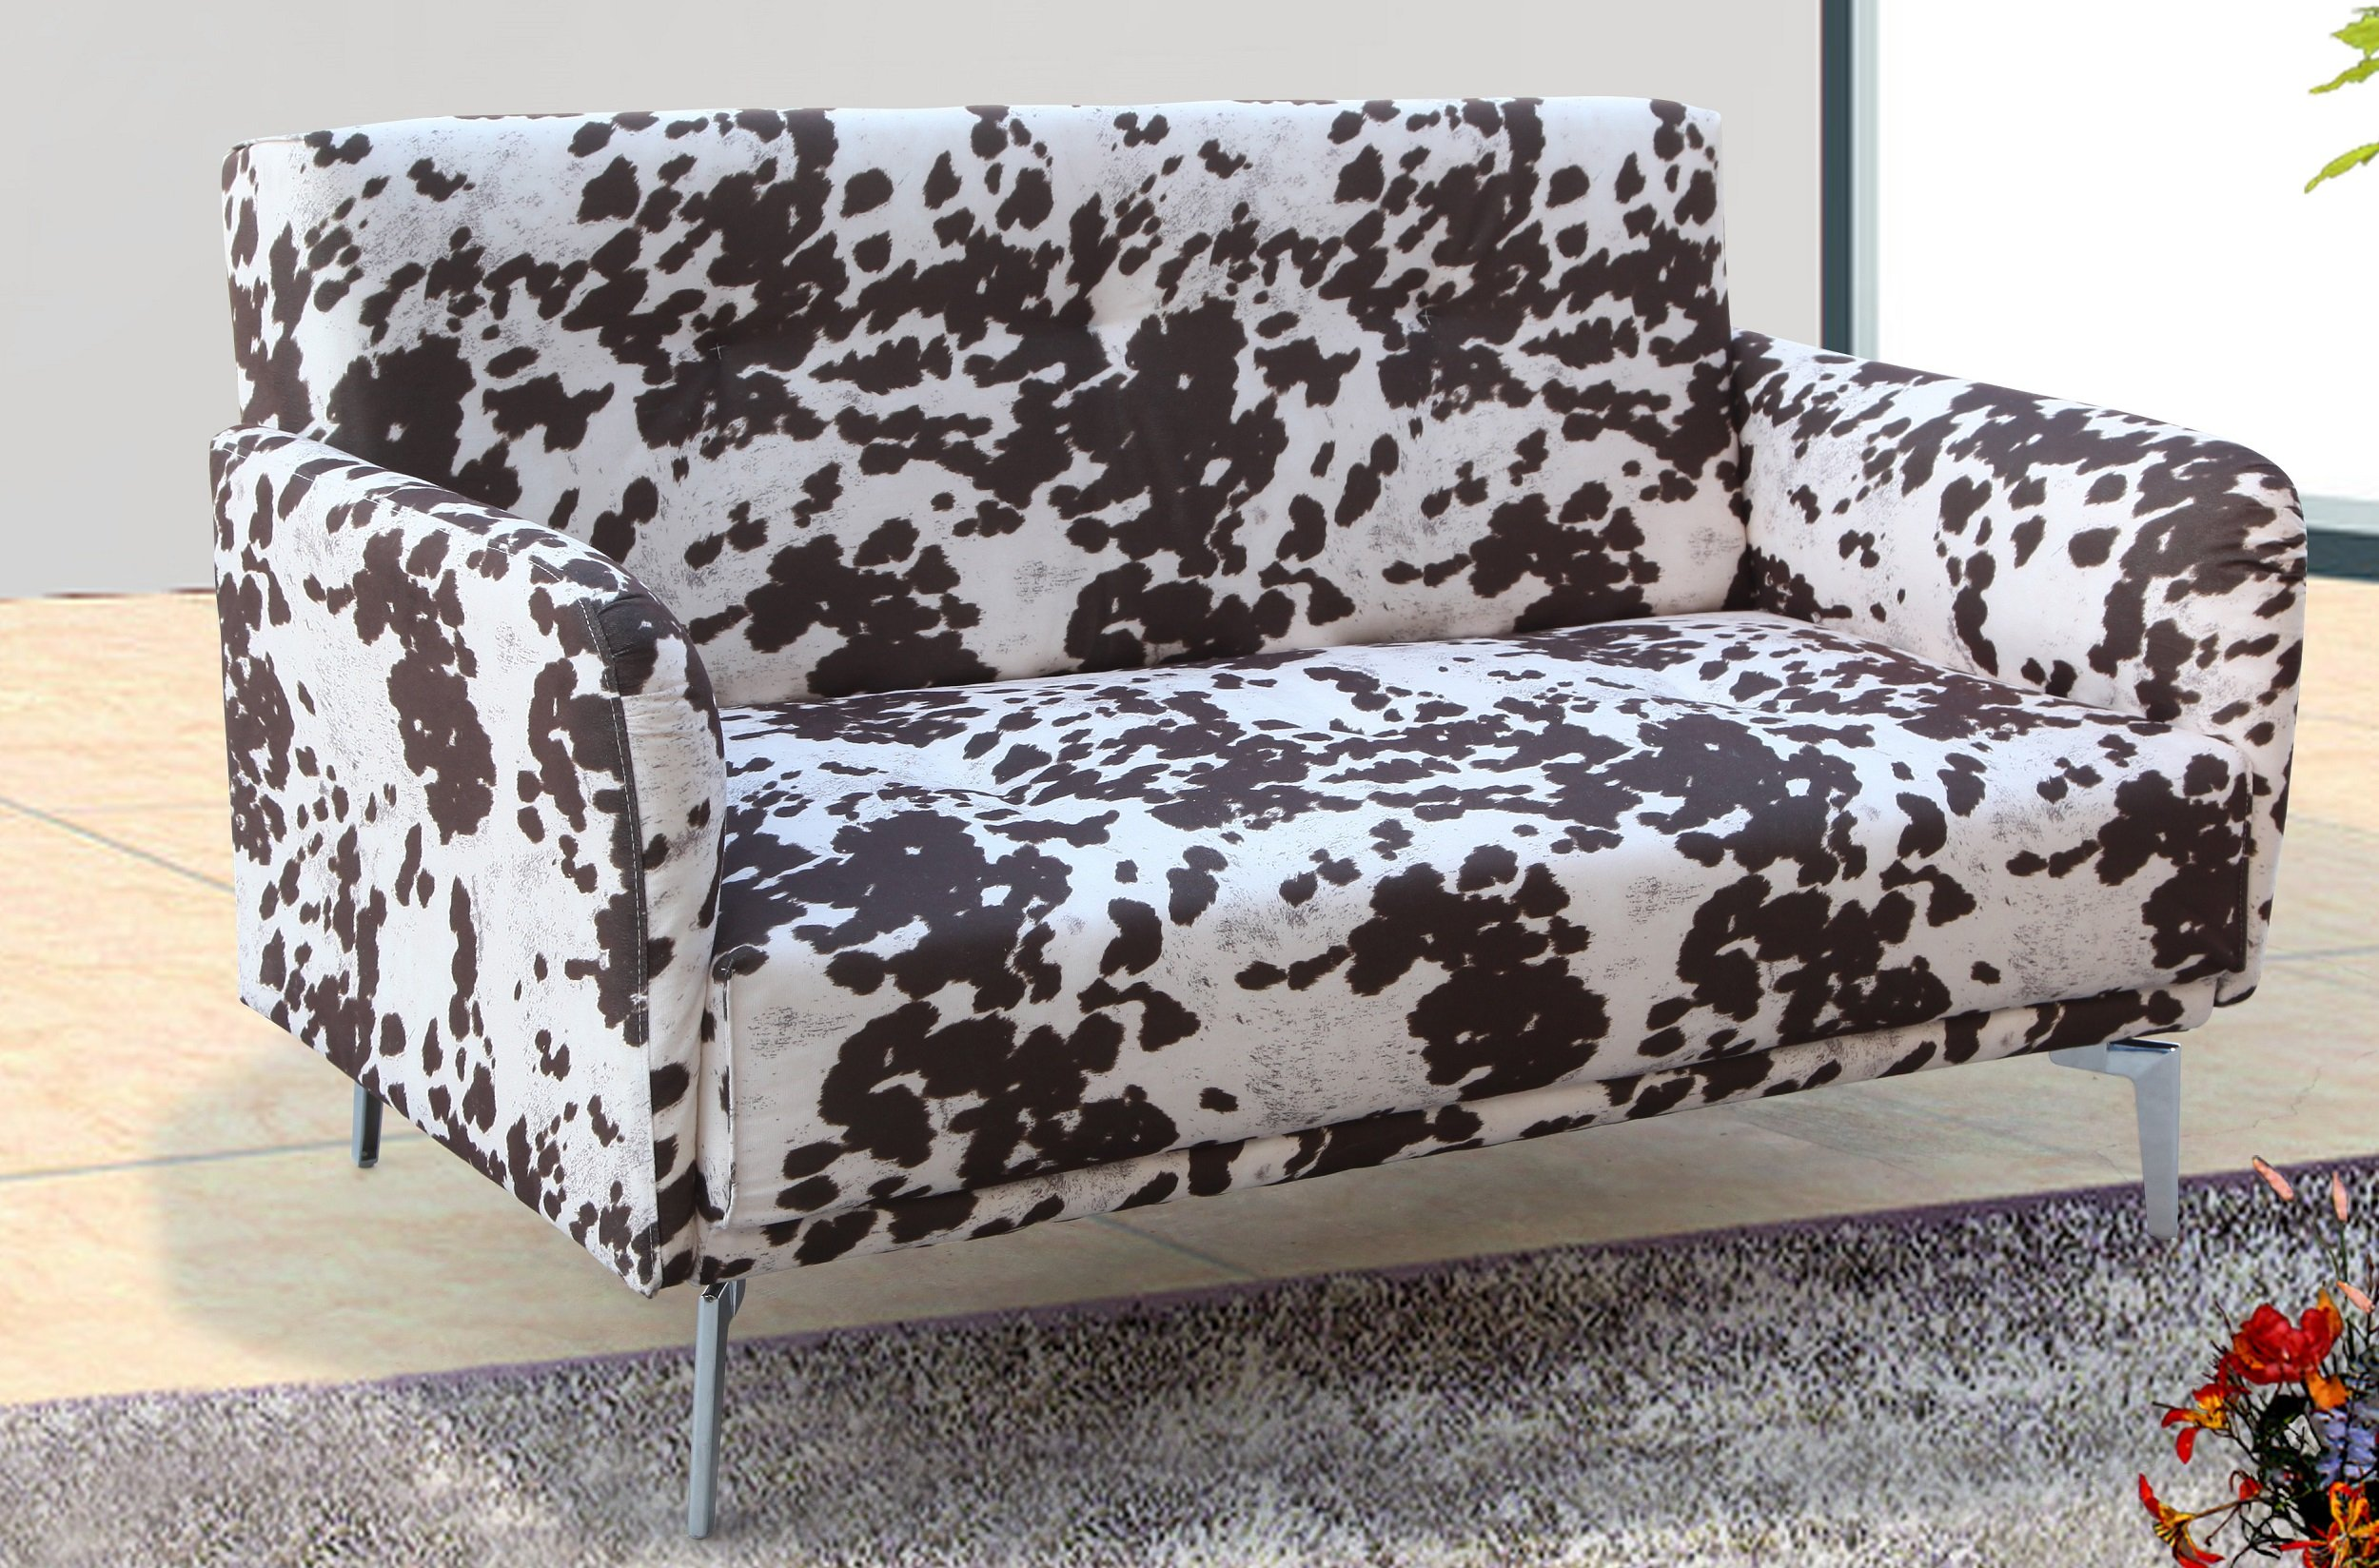 walmart lovely for green mesmerizing cover dark chair home chairs lovesea jcpenney stretch pattern covers slipcovers leather couch loveseat in furniture ektorp dining ideas overstuffed decorating floral